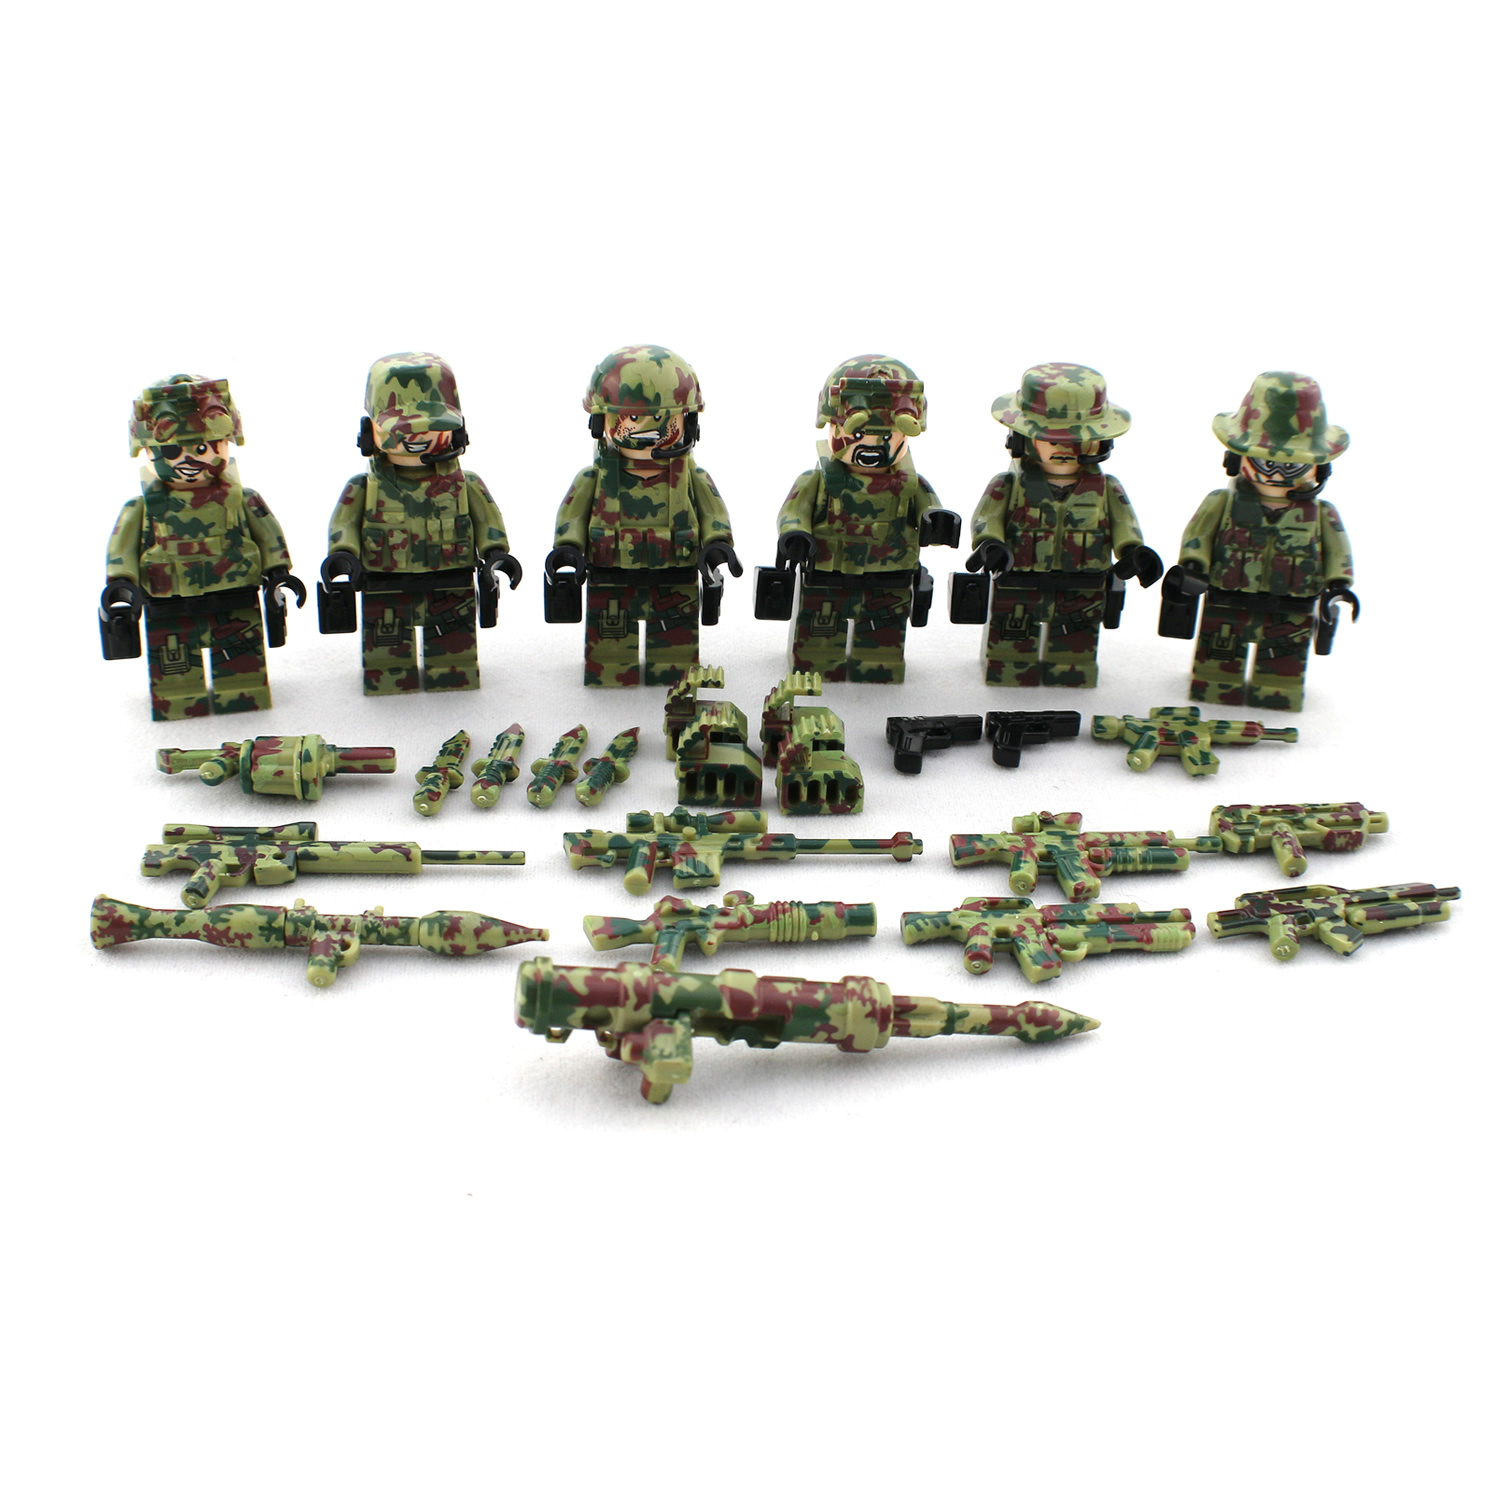 Cool Toy Army Men : Army commando soldiers minifigs lego comaptible